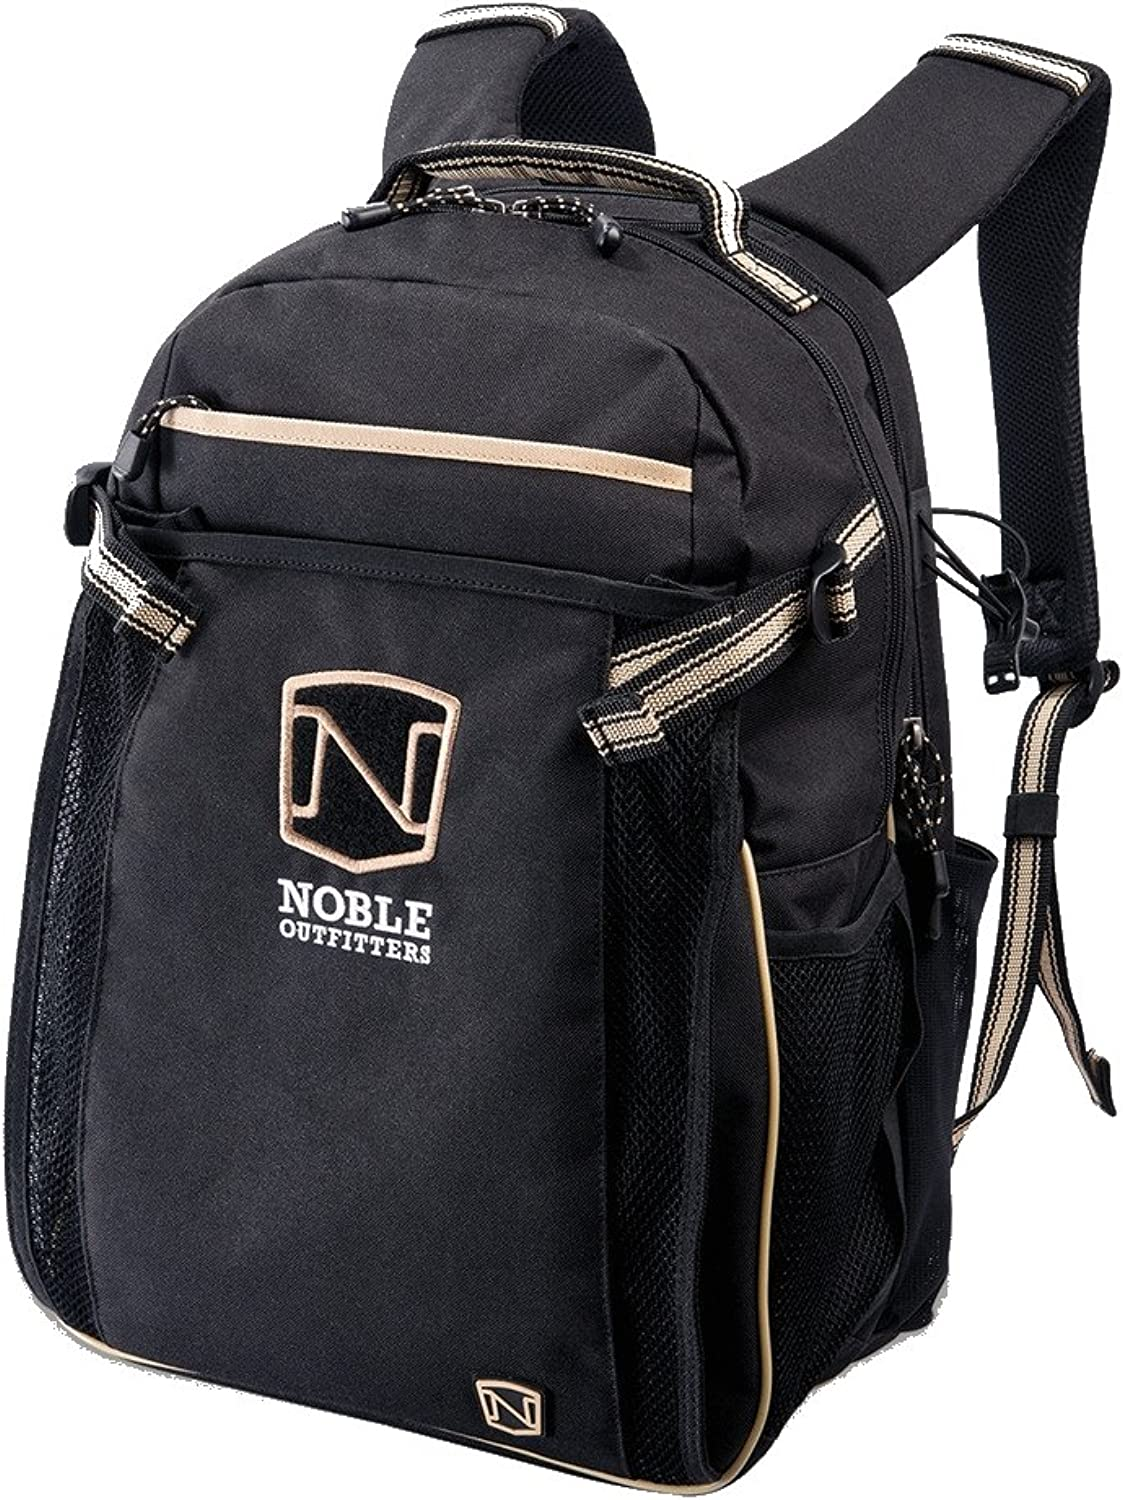 Noble Outfitters Ringside Pack  Black  Horse Equestrian Rider Clothing